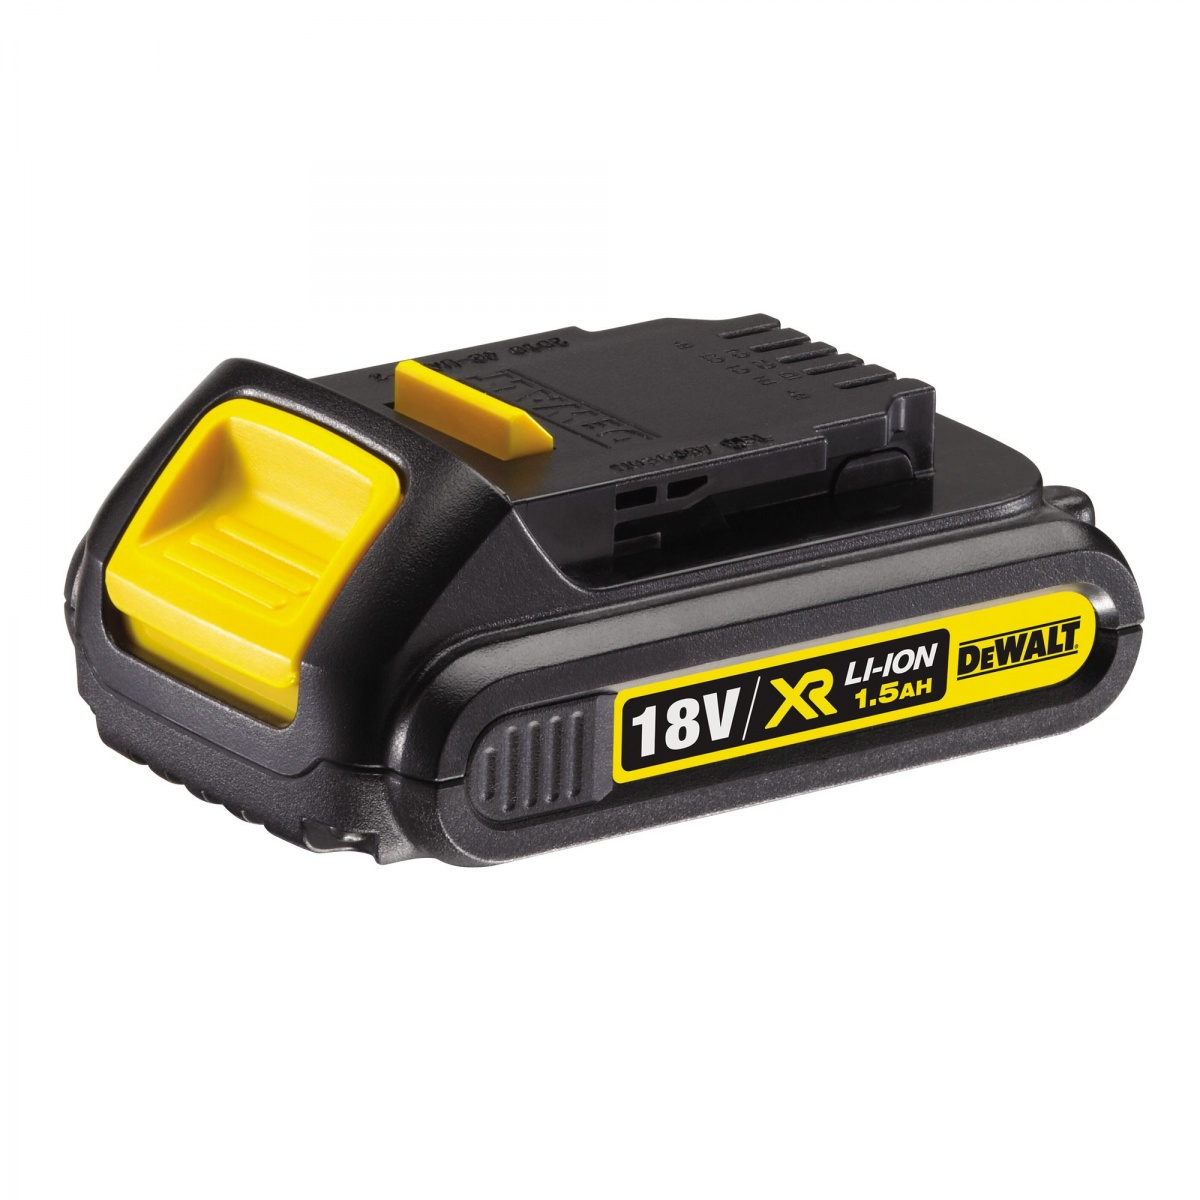 DEWALT DCB181 18V 1.5AH COMPACT XR LITHIUM ION BATTERY